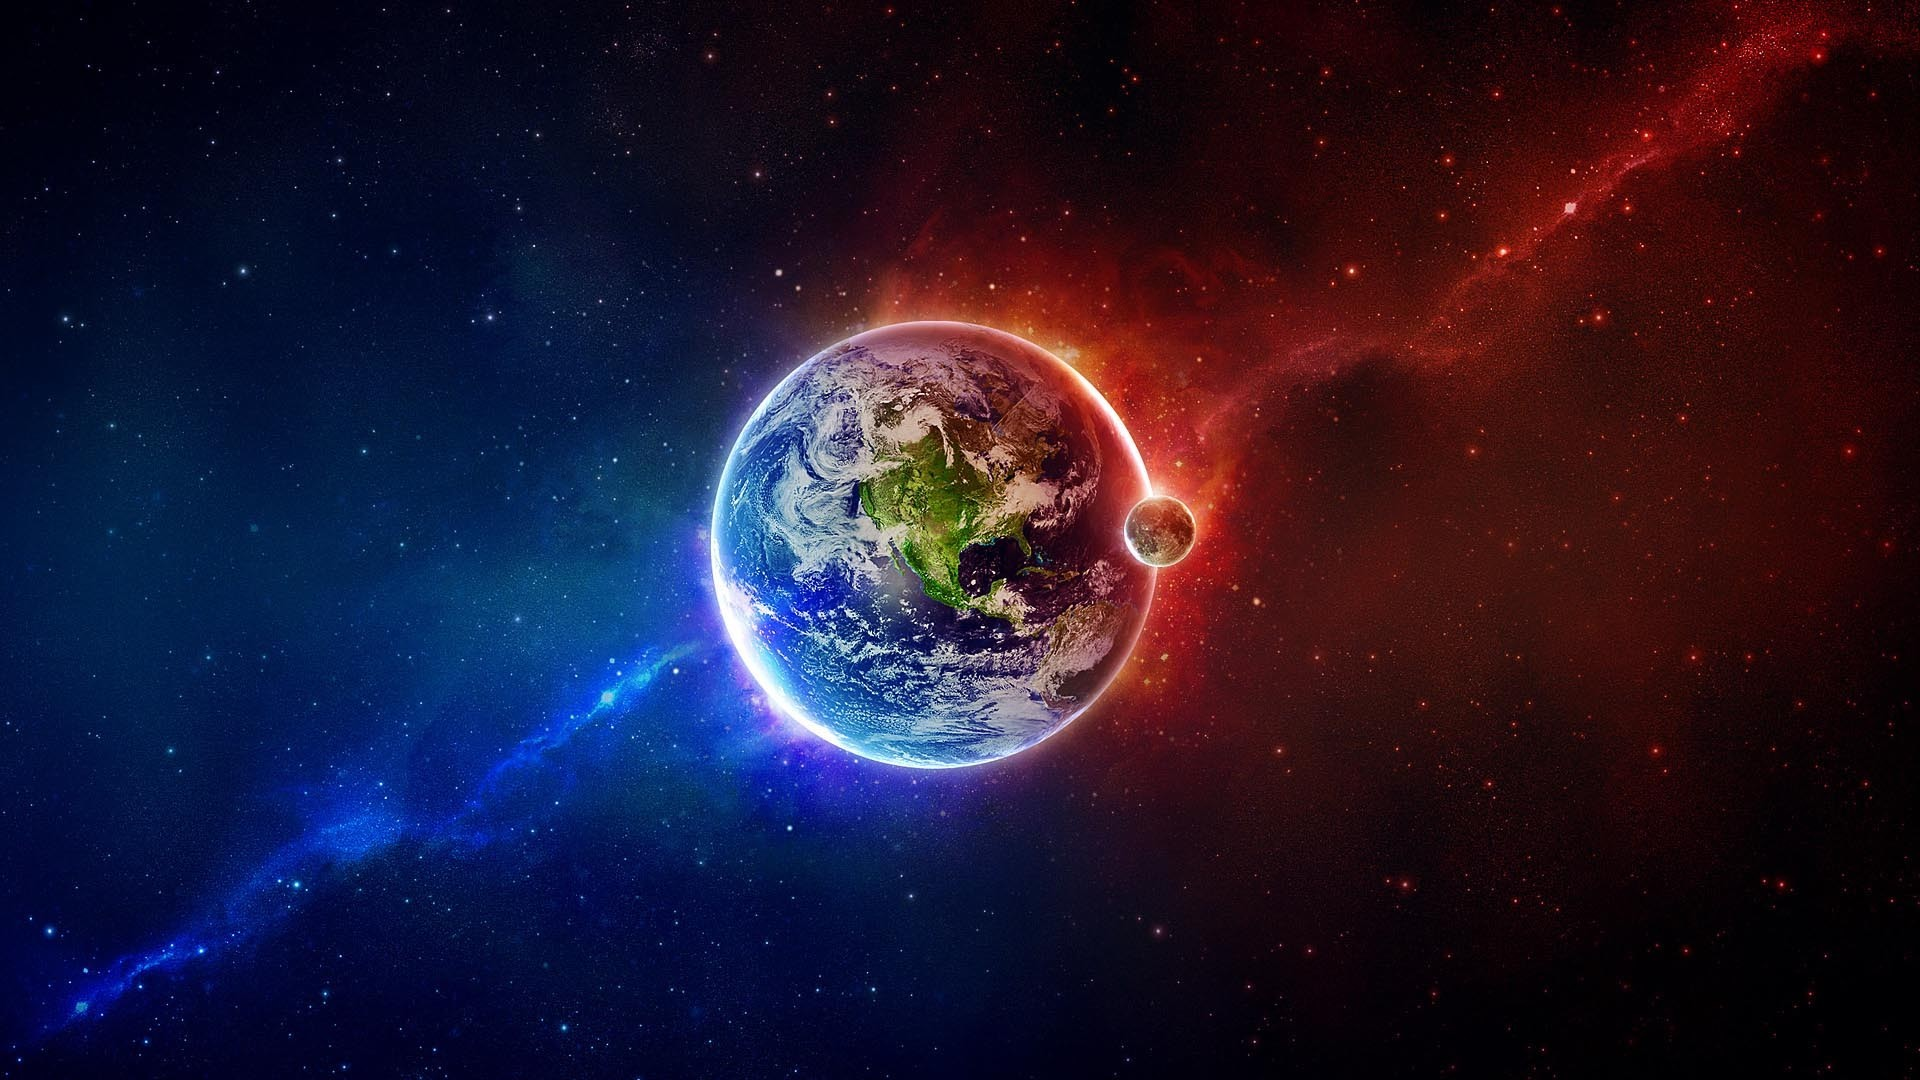 Space Wallpaper Windows 10 69 Images